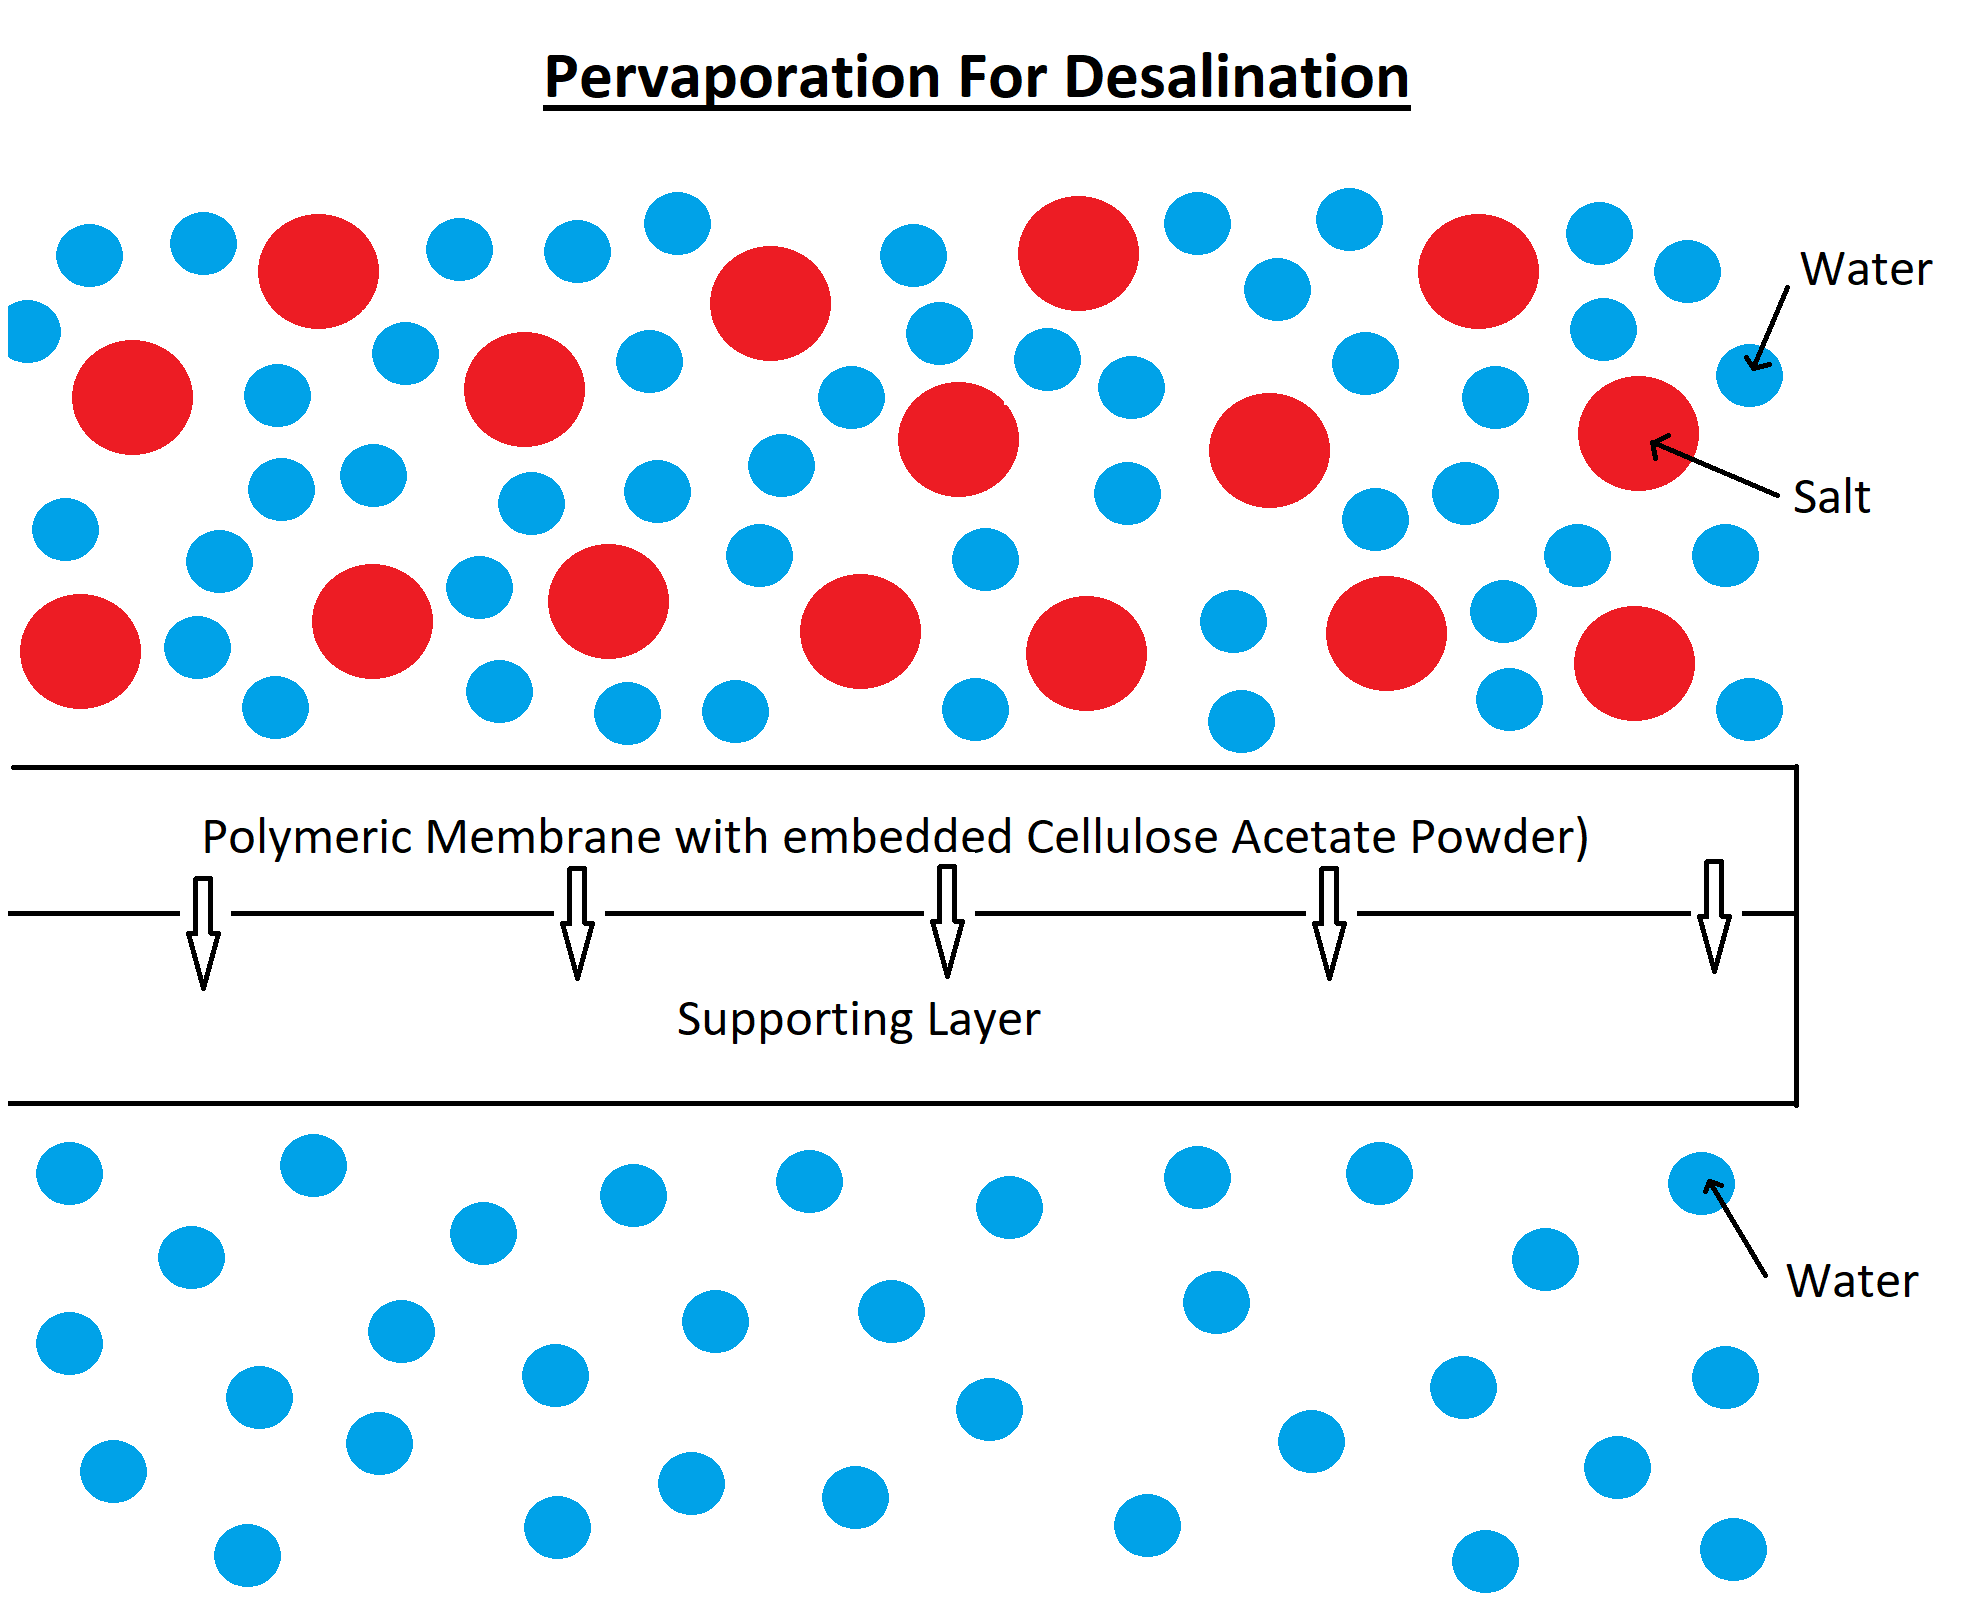 Pervaporation For Desalination